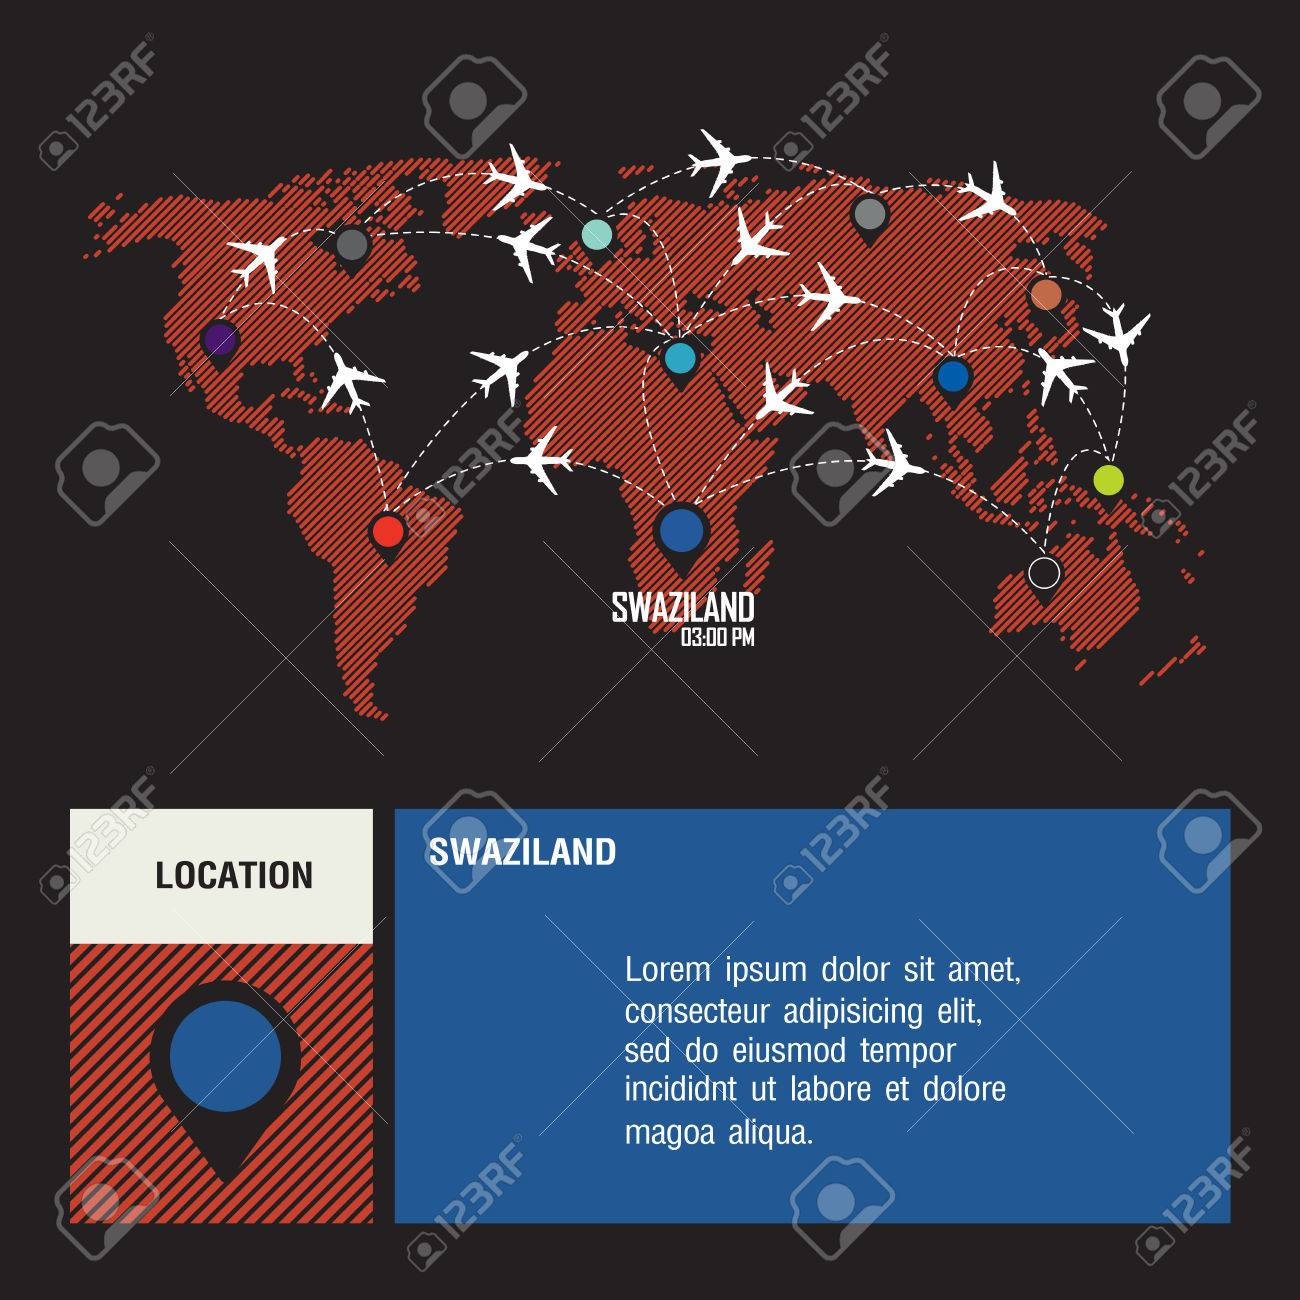 SWAZILAND Vector World Travel Map With Airplanes Royalty Free ...